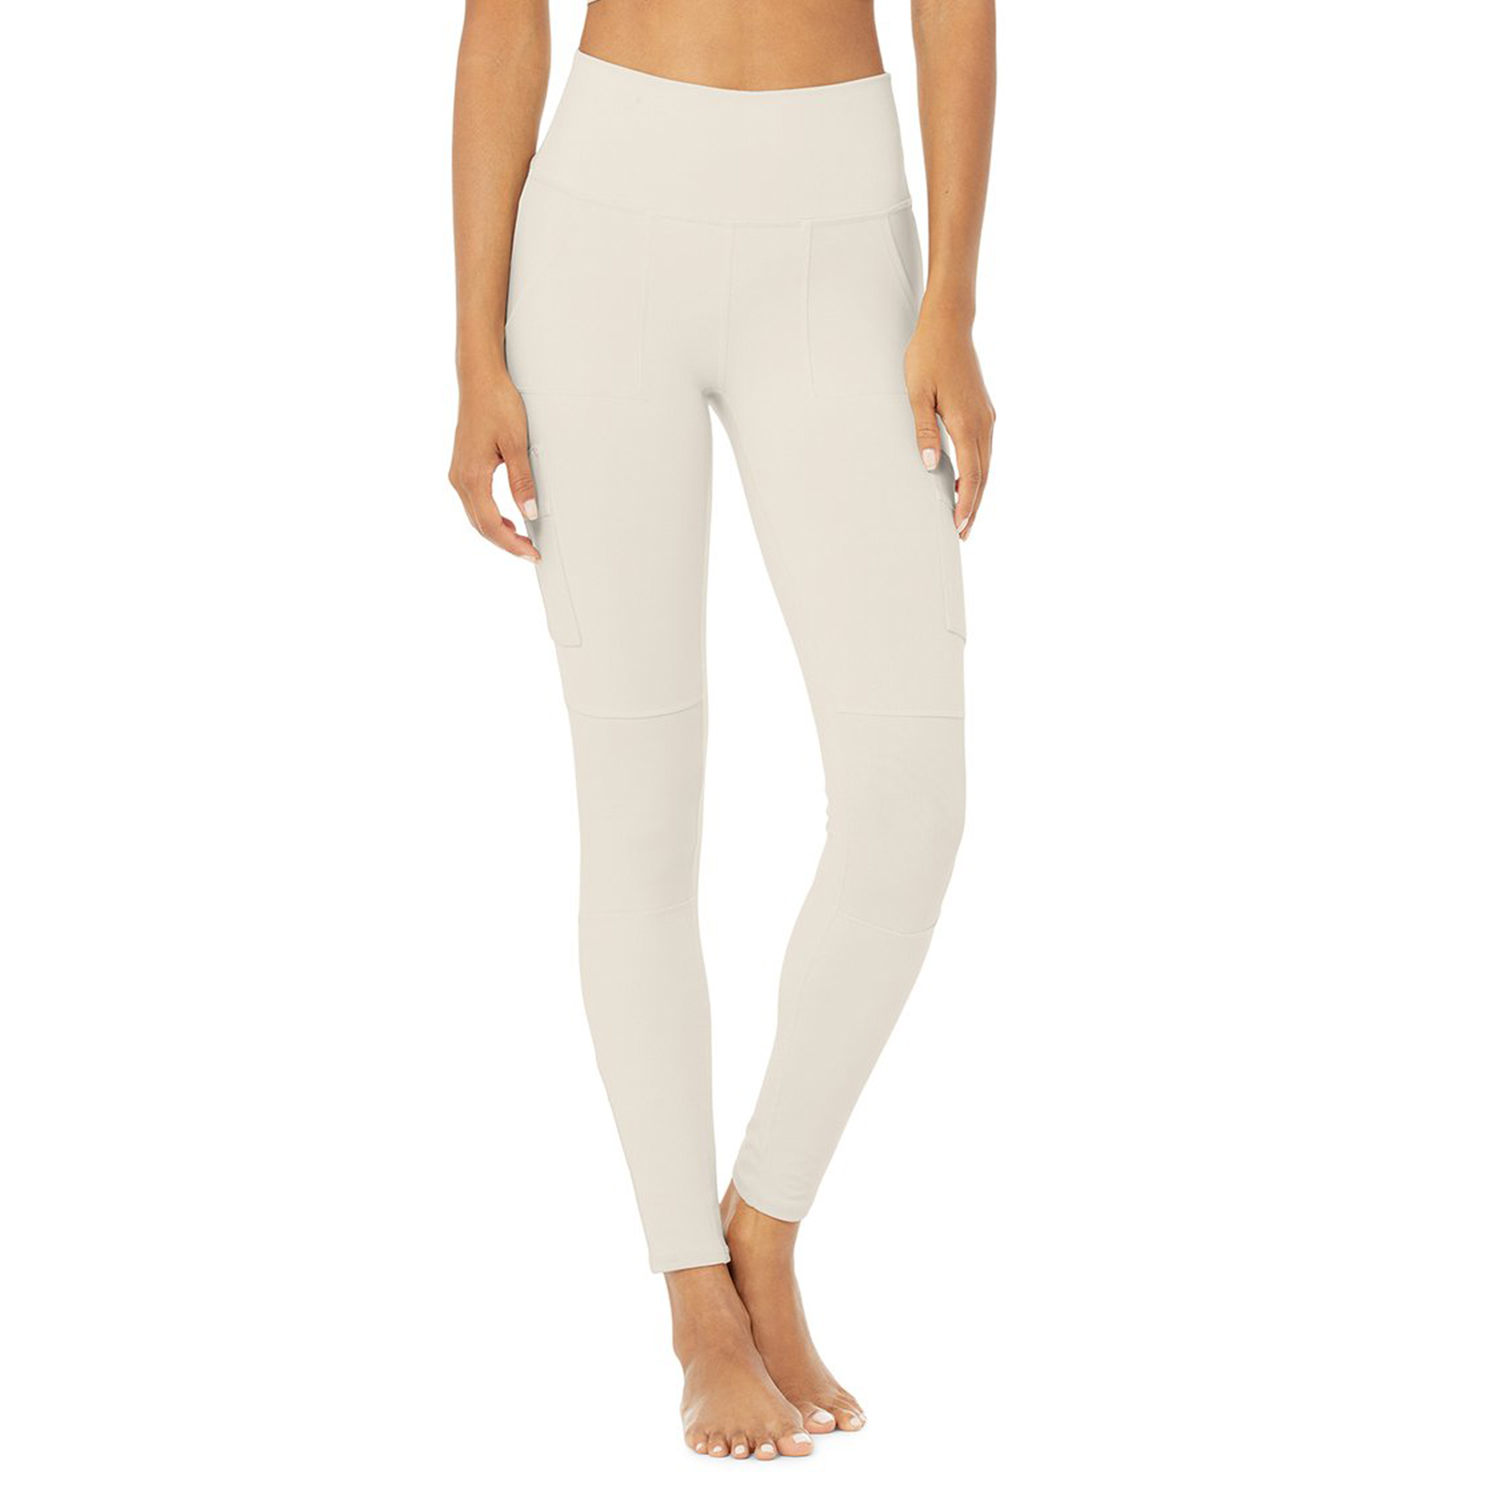 Alo Yoga Workout Clothes